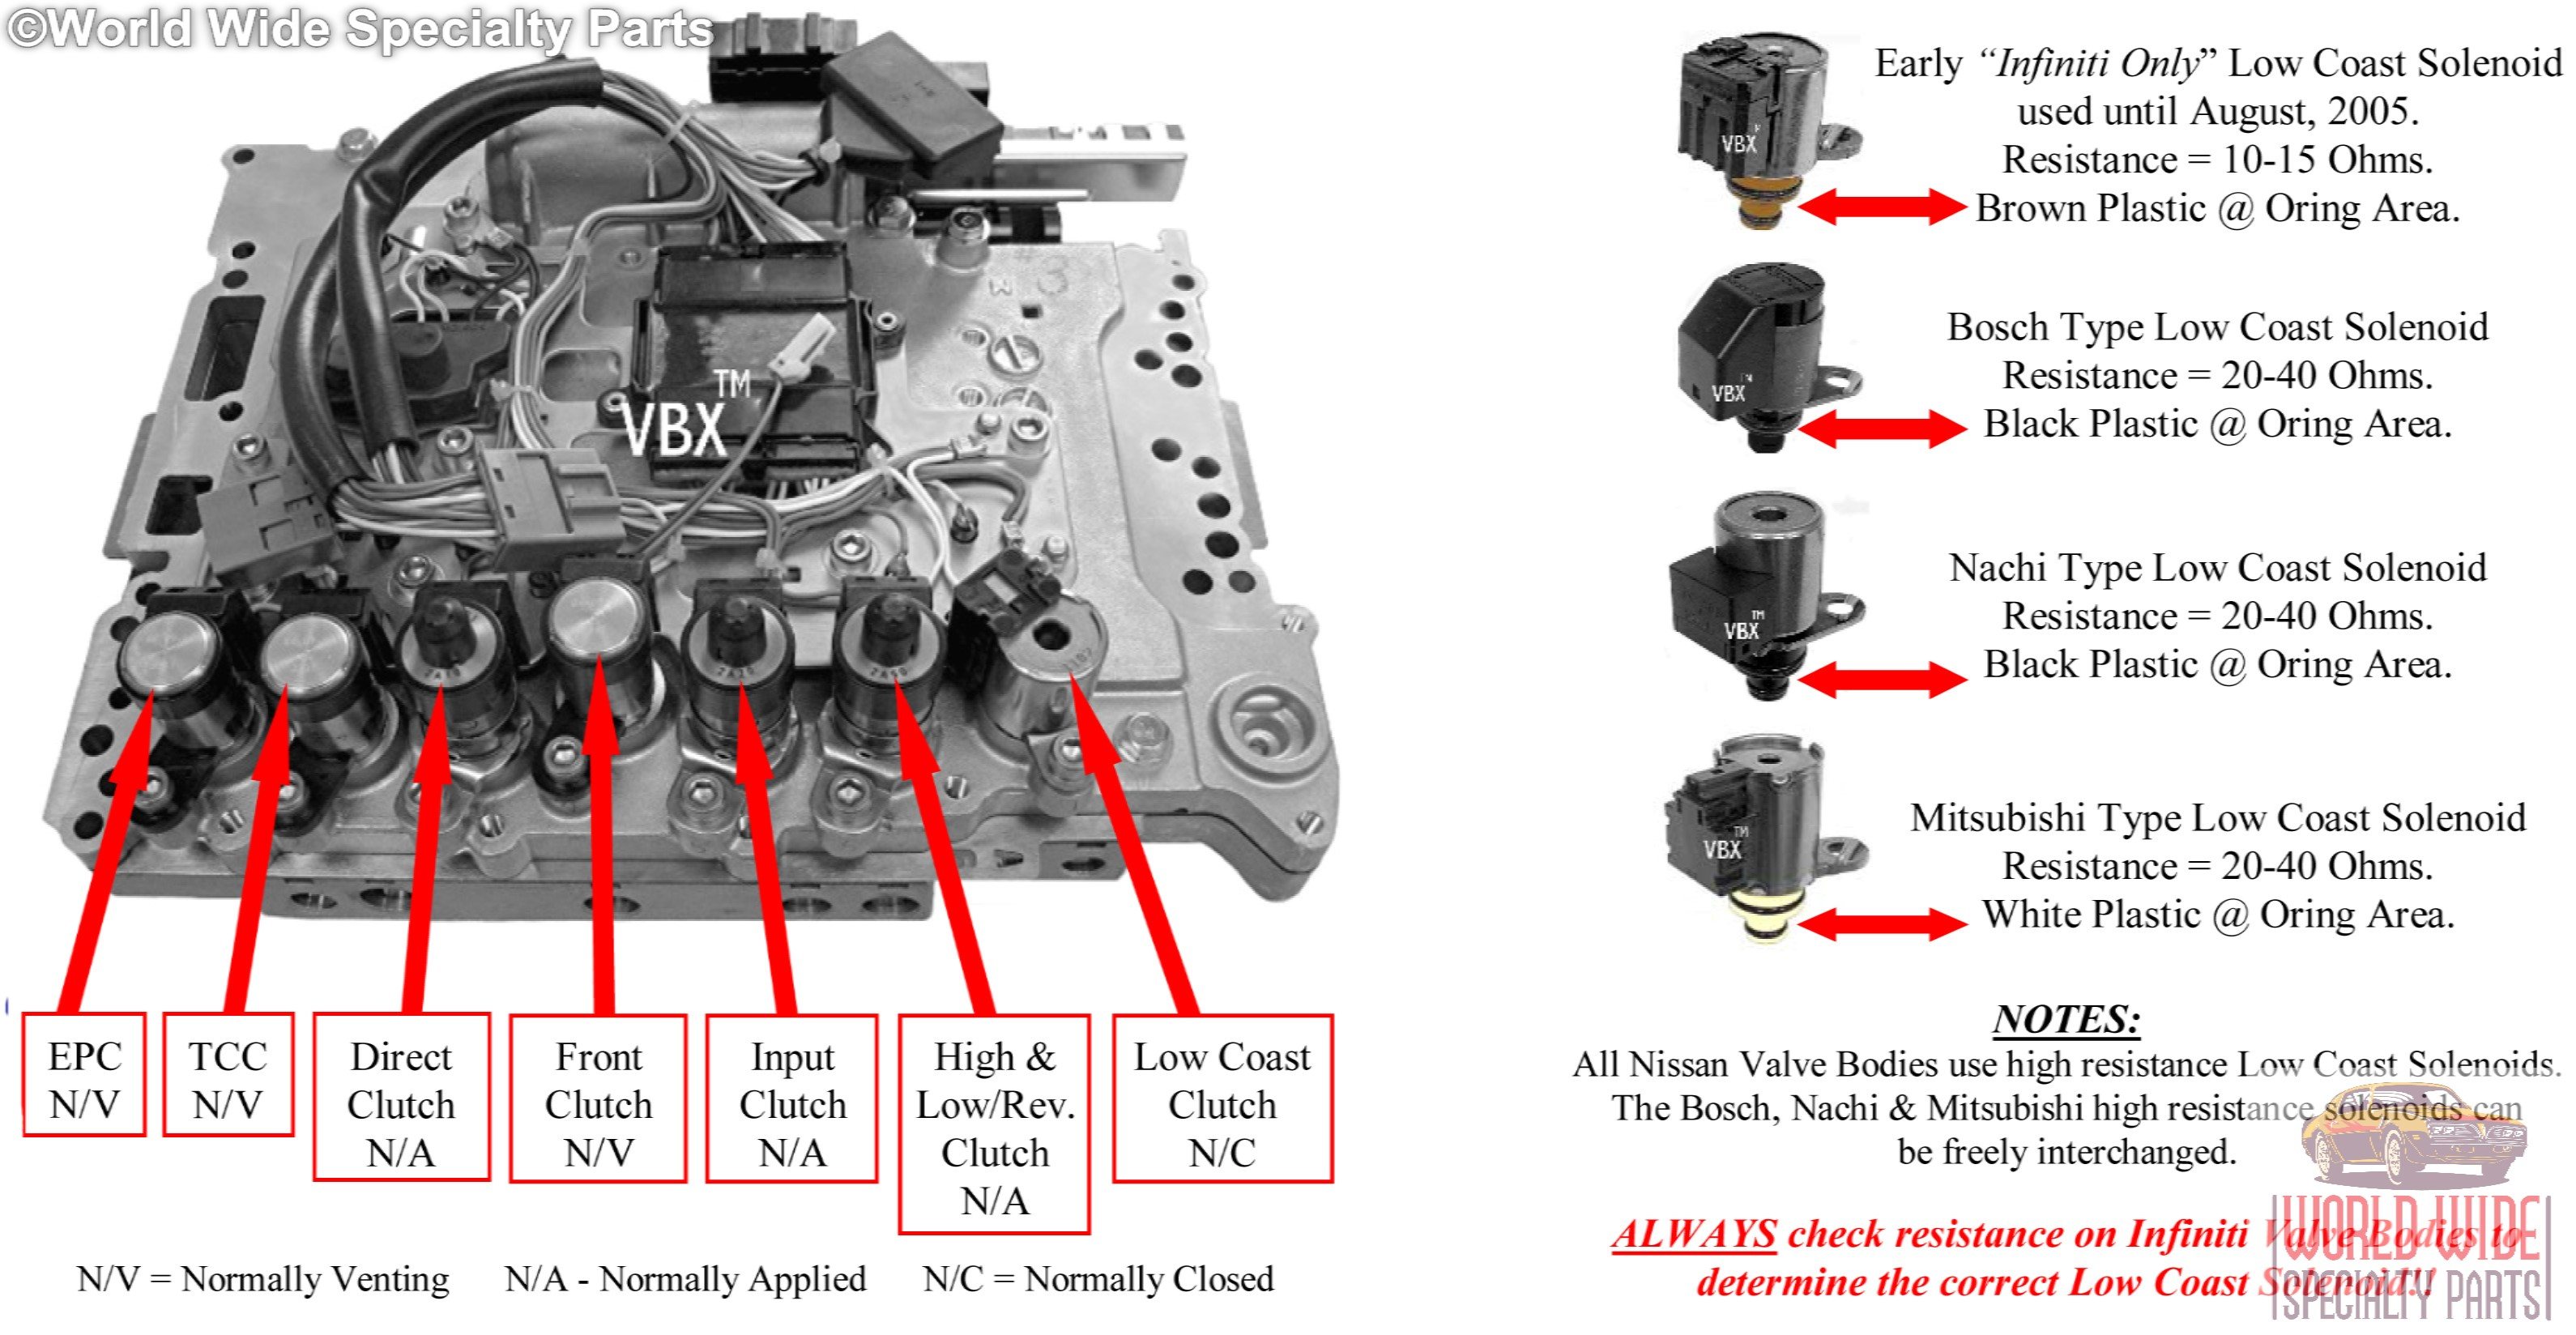 2007 Silverado Torque Converter Location on 2012 toyota camry stereo wiring schematic diagram